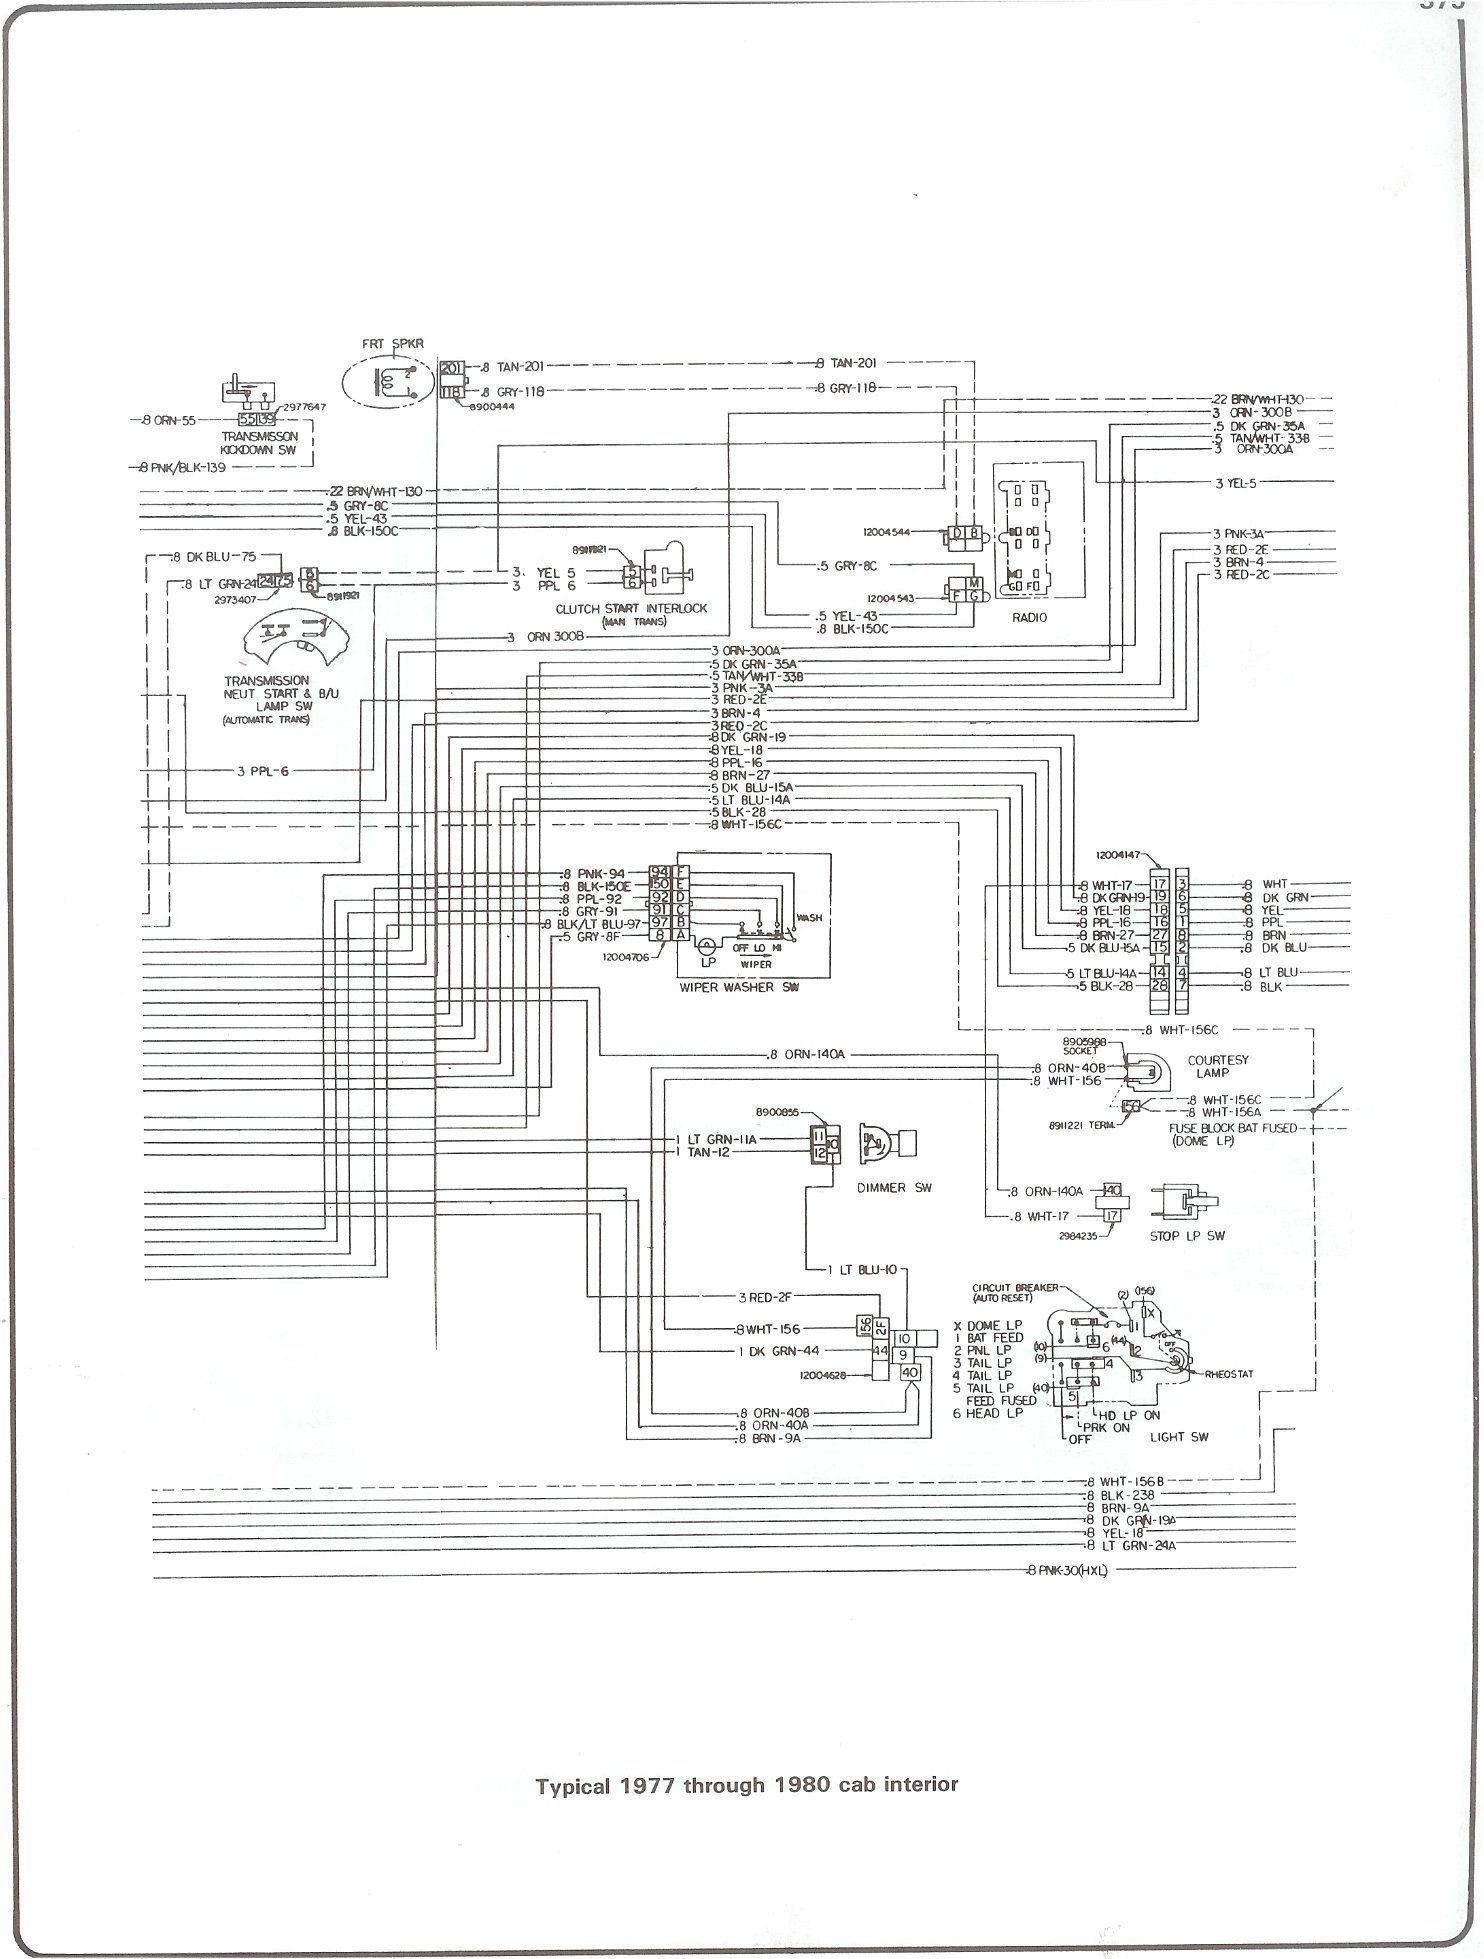 Carter 250 Wiring Diagram Library Lifan Harness 1978 Ford Truck Content Resource Of U2022 Trailer